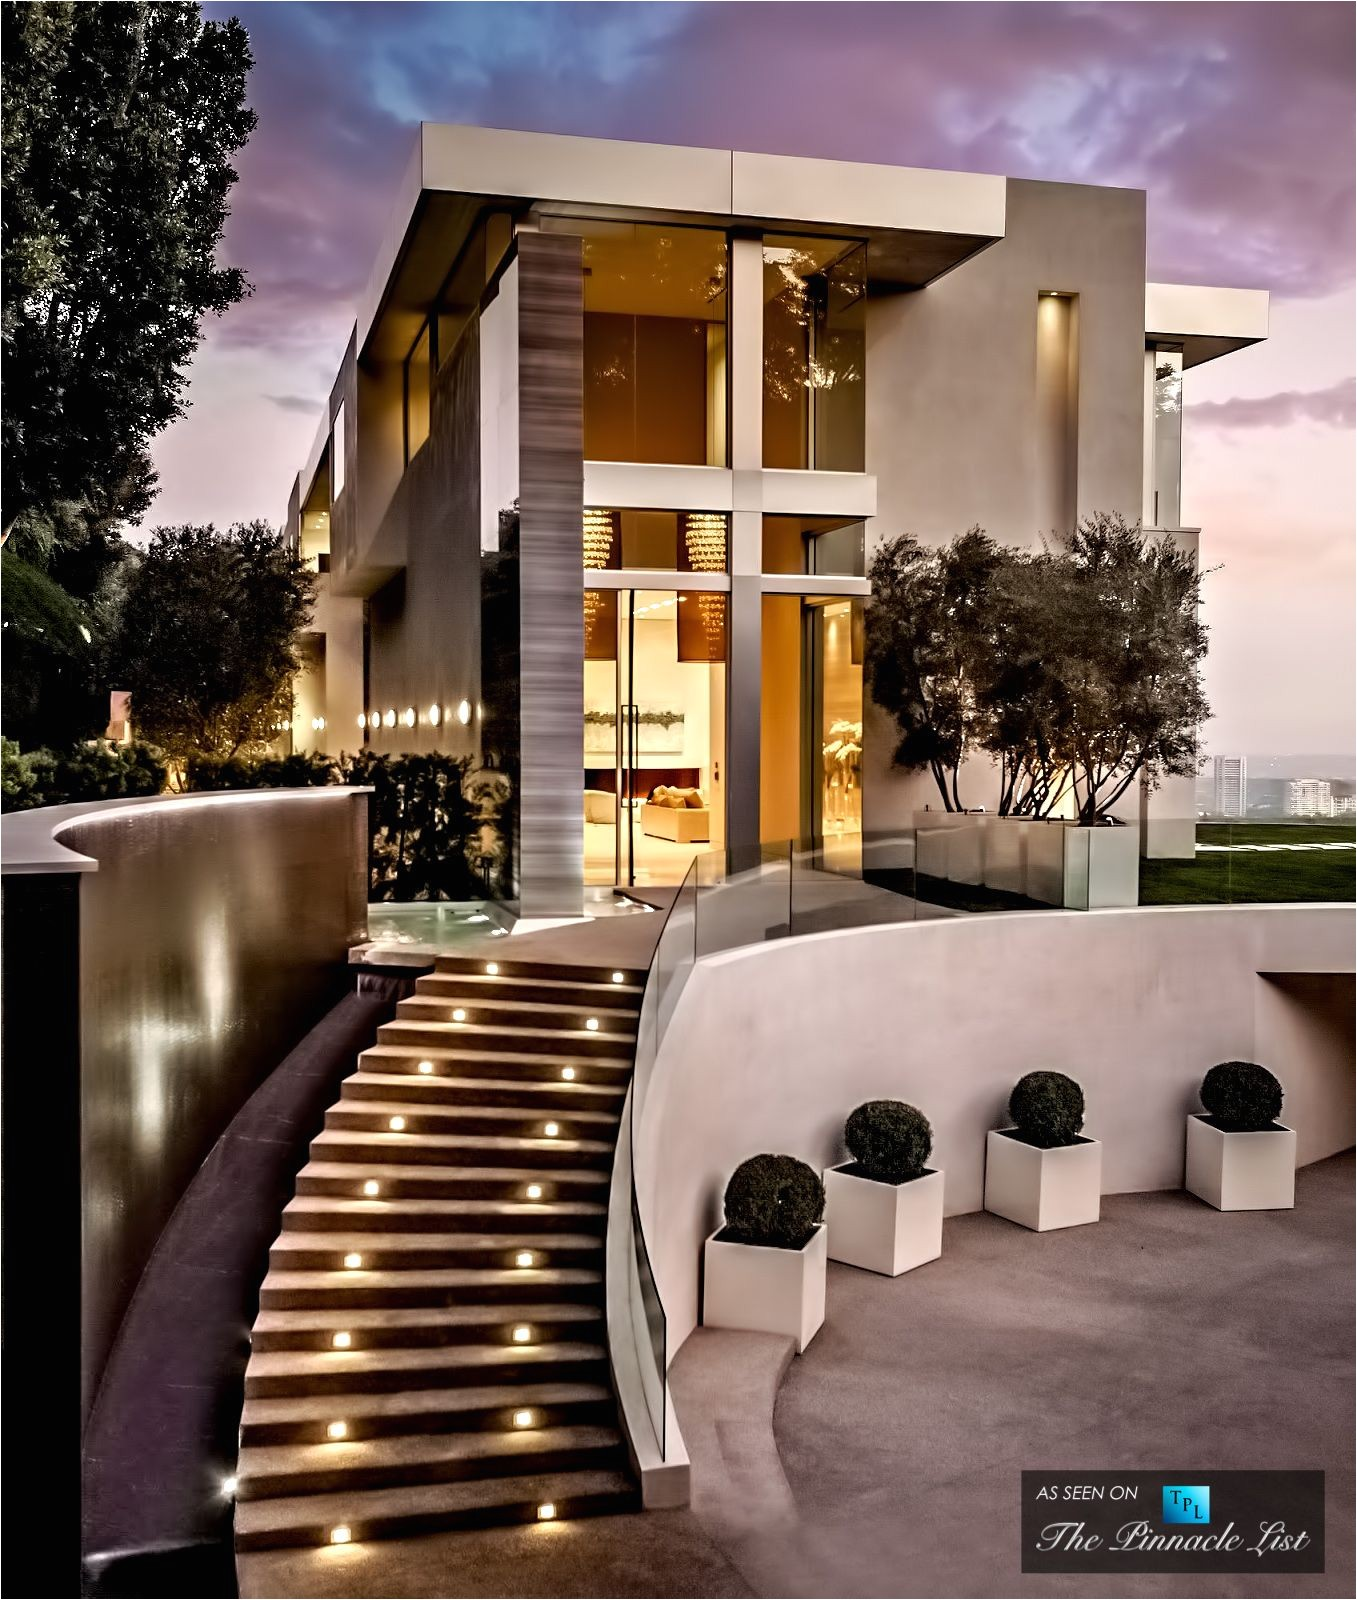 Los Angeles Architect House 24 5 Million Bel Air Residence 755 Sarbonne Rd Los Angeles Ca